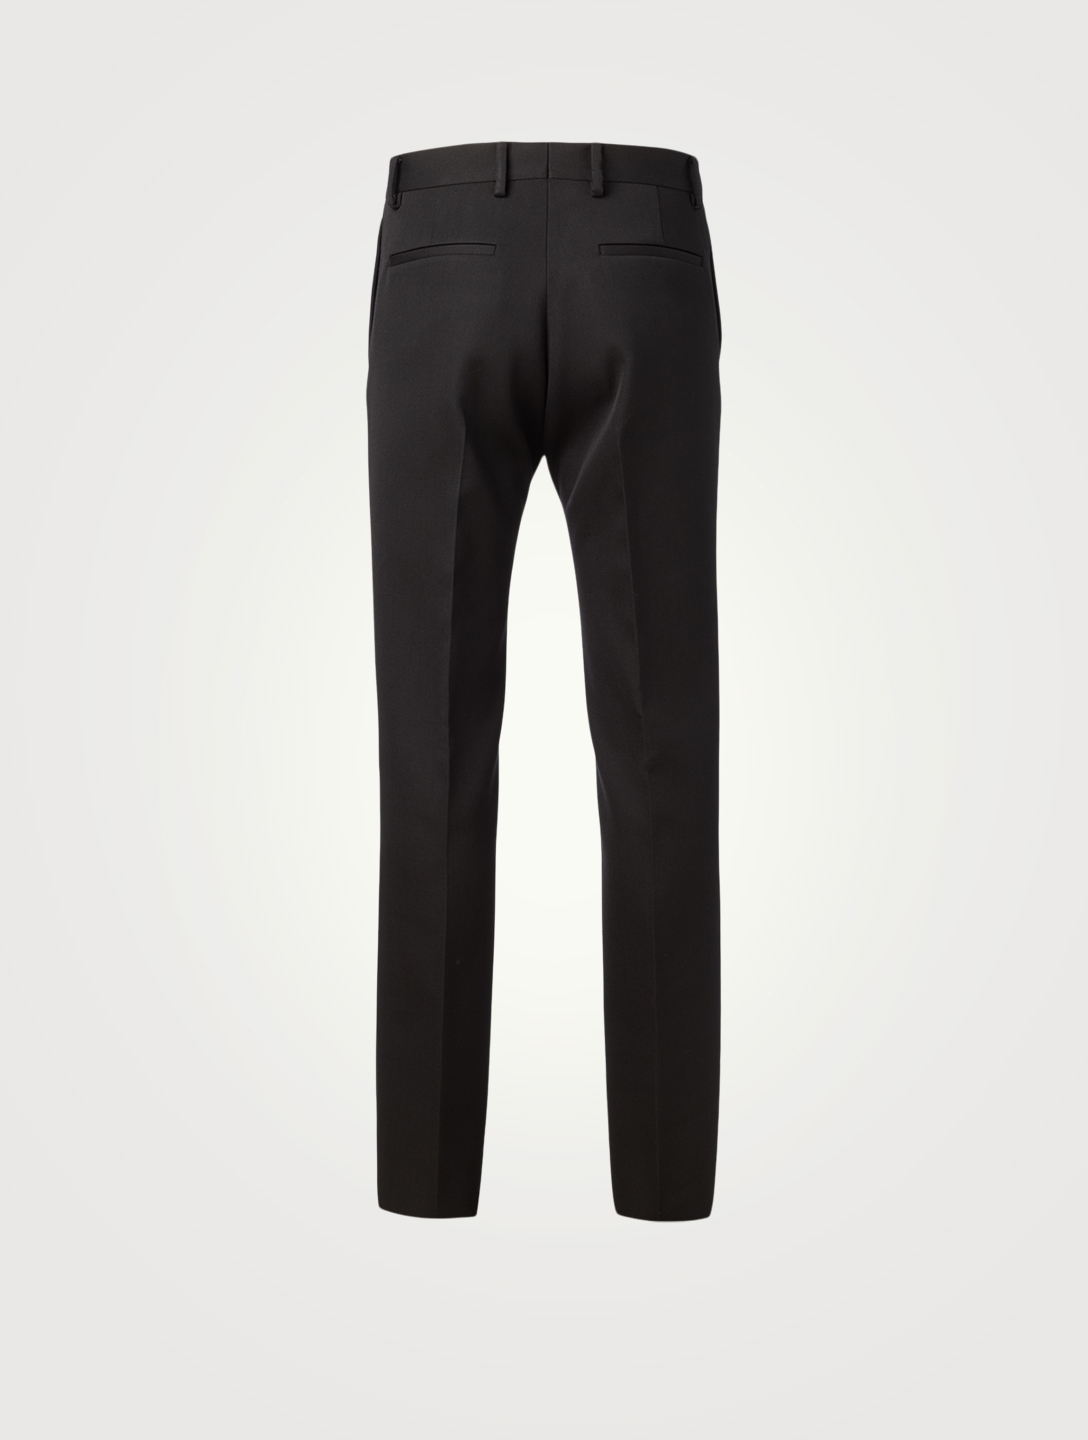 BOTTEGA VENETA Wool Straight-Leg Pants Men's Black